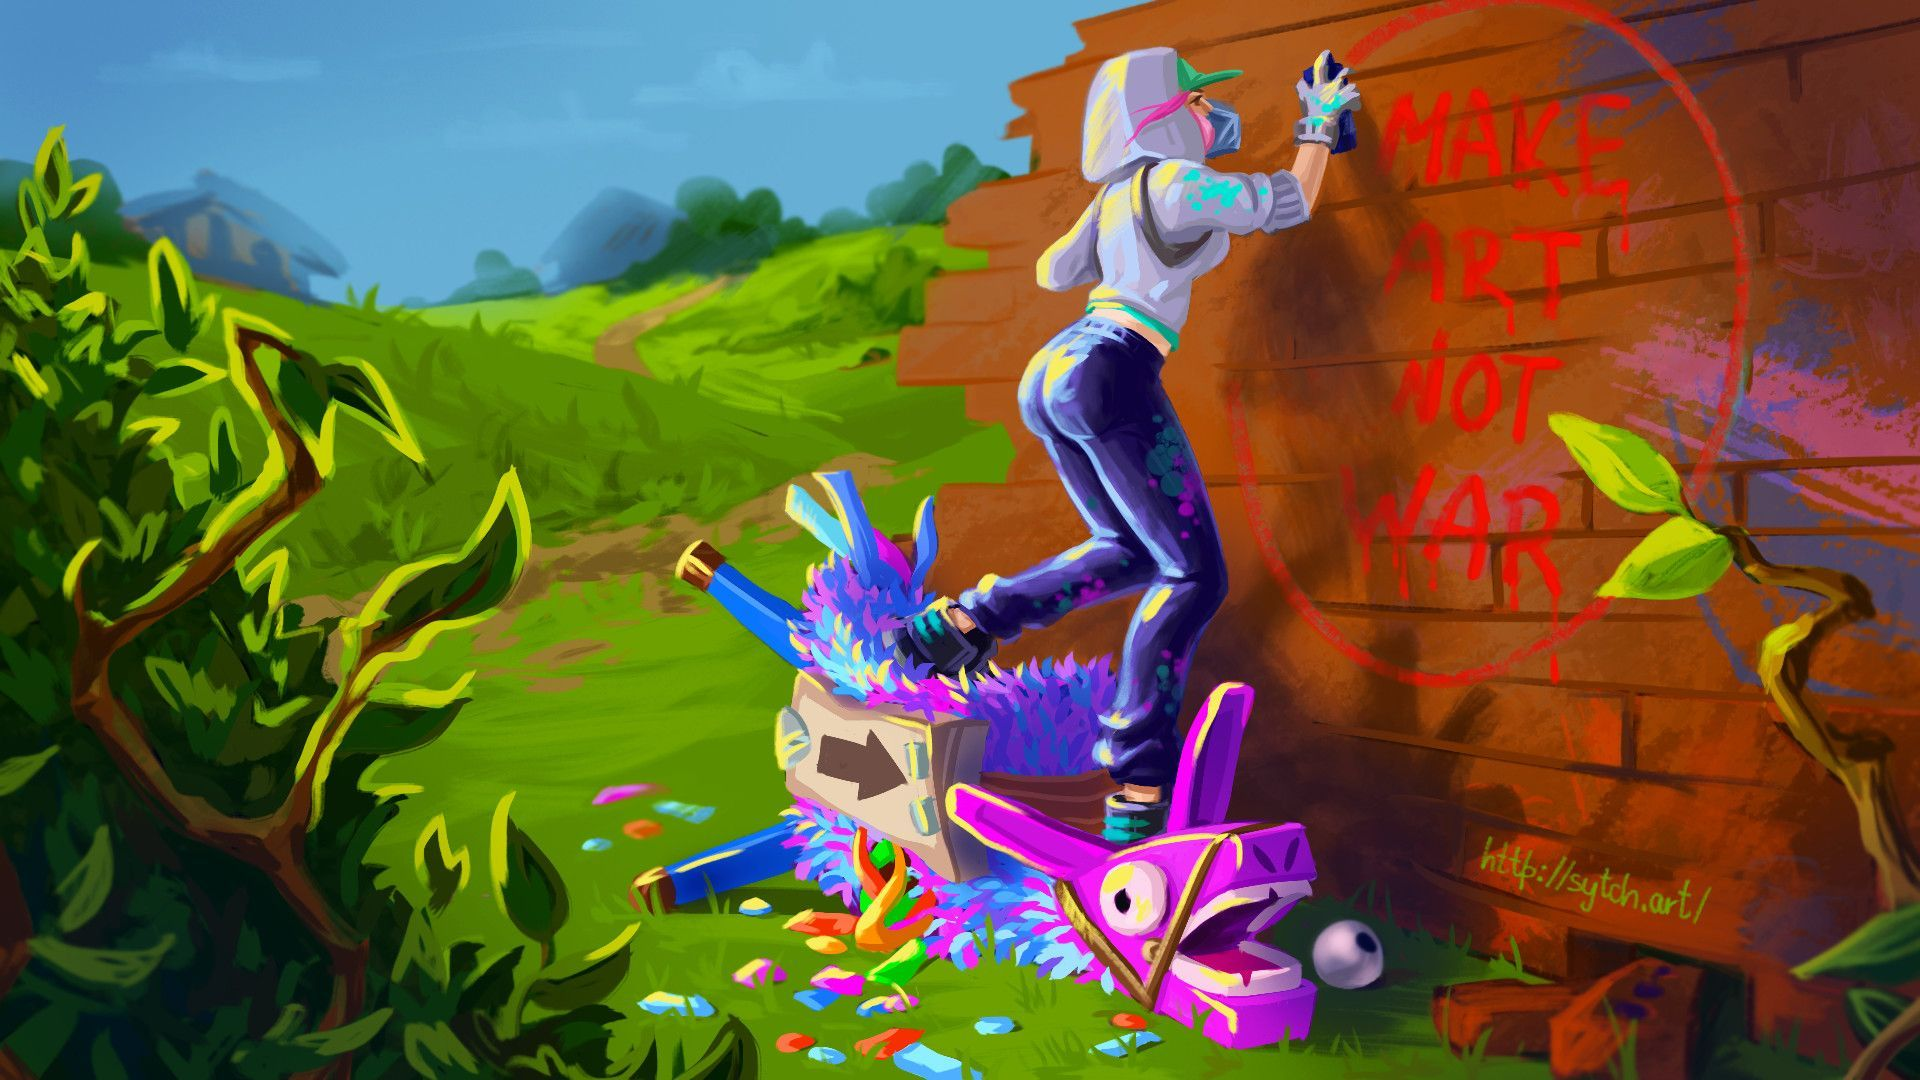 Cool Fortnite Llama Desktop Wallpapers Wallpaper Cave